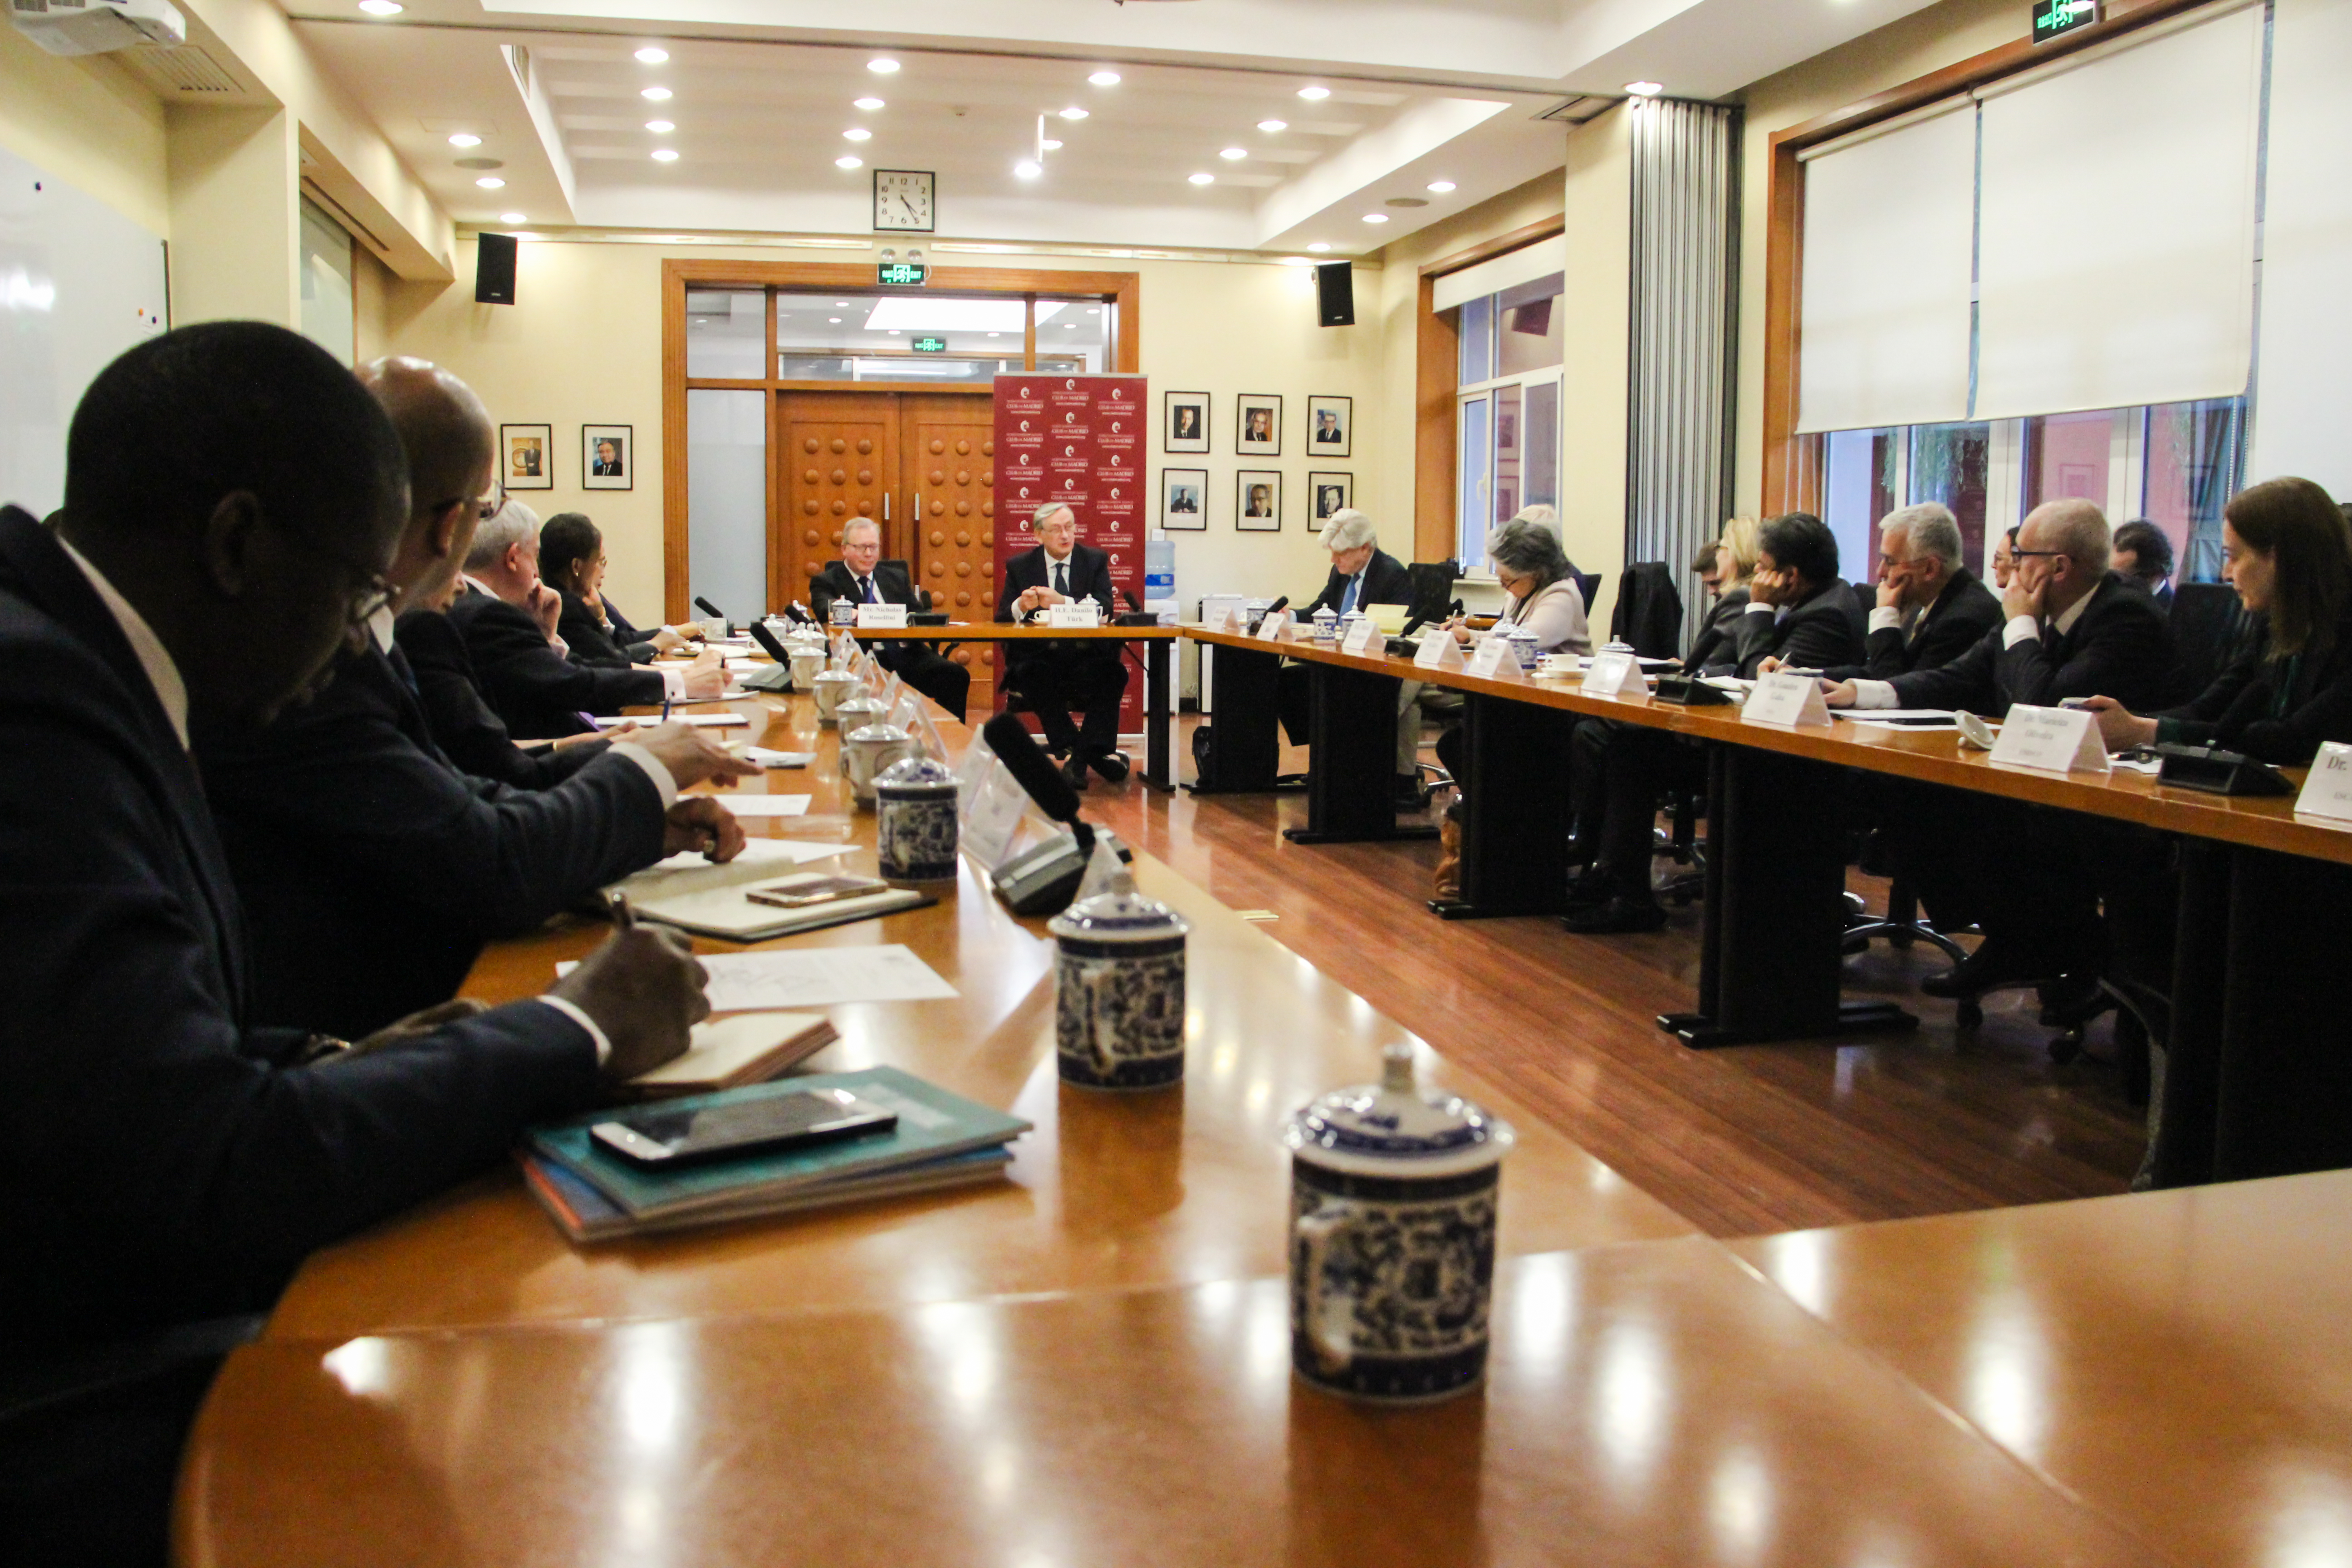 Club de Madrid Members exchange ideas for a renewed multilateral system at United Nations China